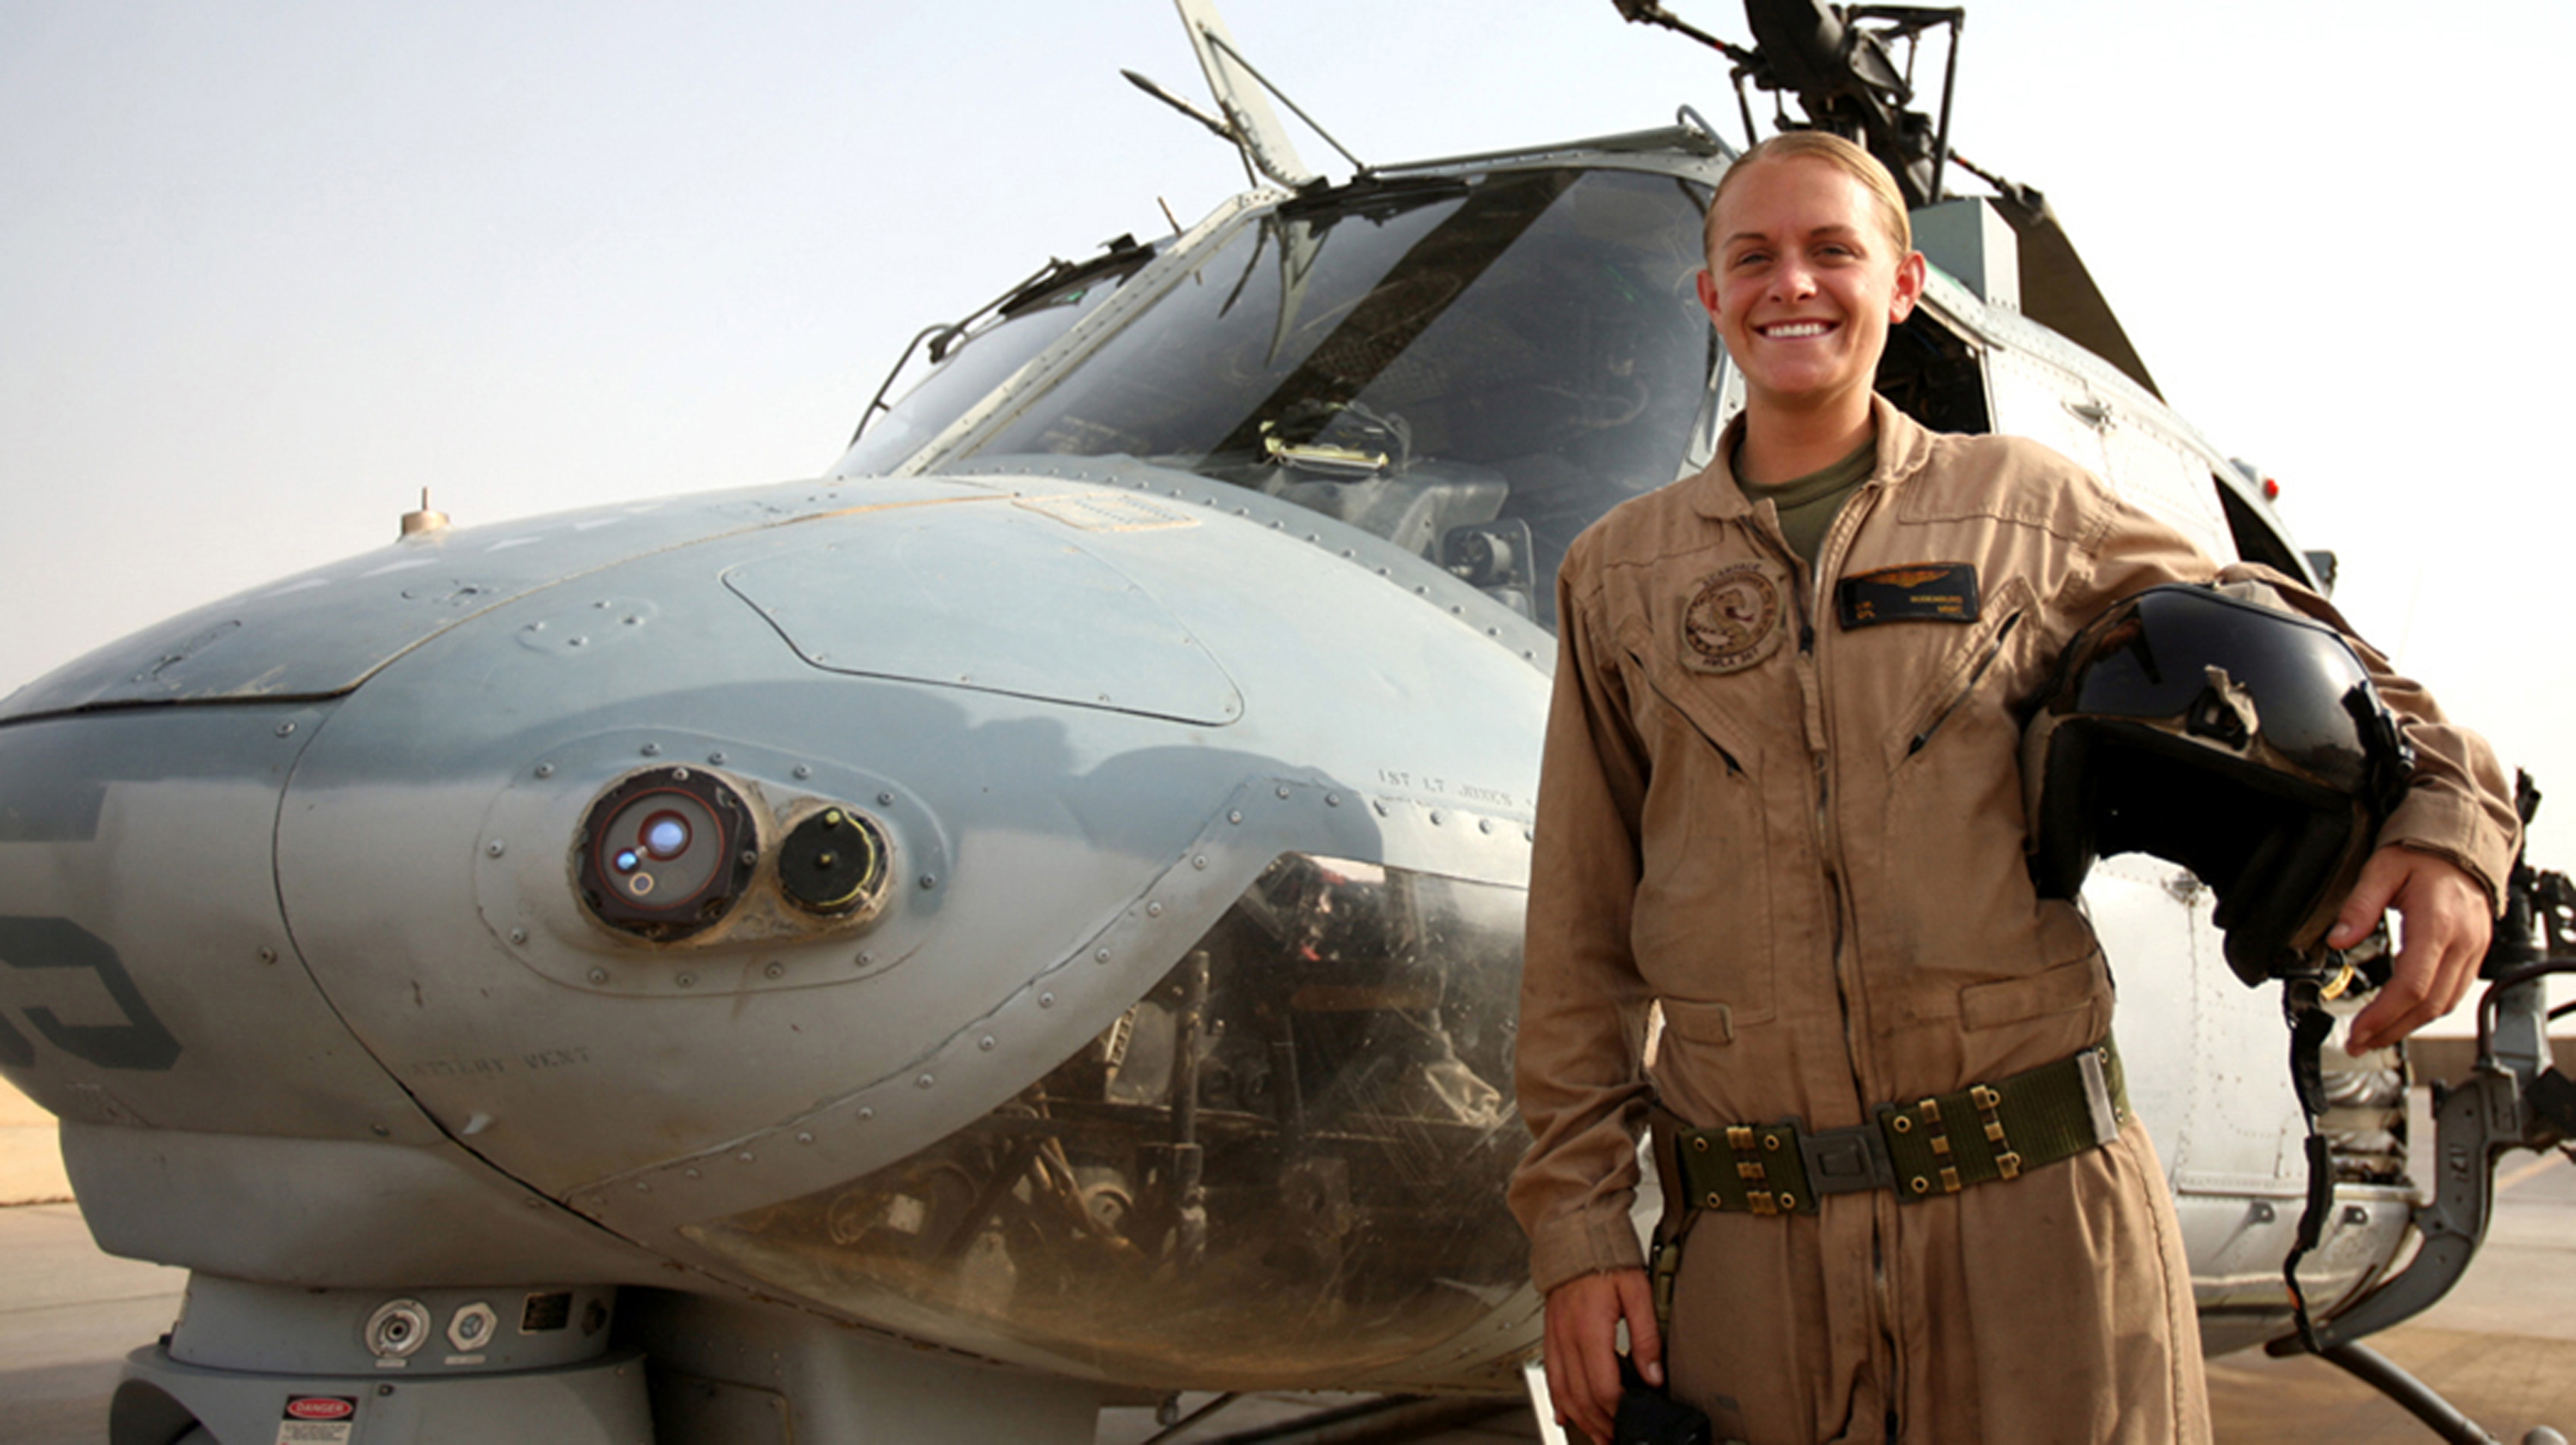 marine helicopter squadron one with Buffalo Native Serves As Huey Crew Chief In Iraq on Pak 20army 20images 20download further V 22 hmx 1 sim likewise Buffalo Native Serves As Huey Crew Chief In Iraq likewise Kennon Protects Interior Cabin For Hmx 1 U S Presidential Greenside Fleet additionally First Female Fly Marine One Relieved  mand.